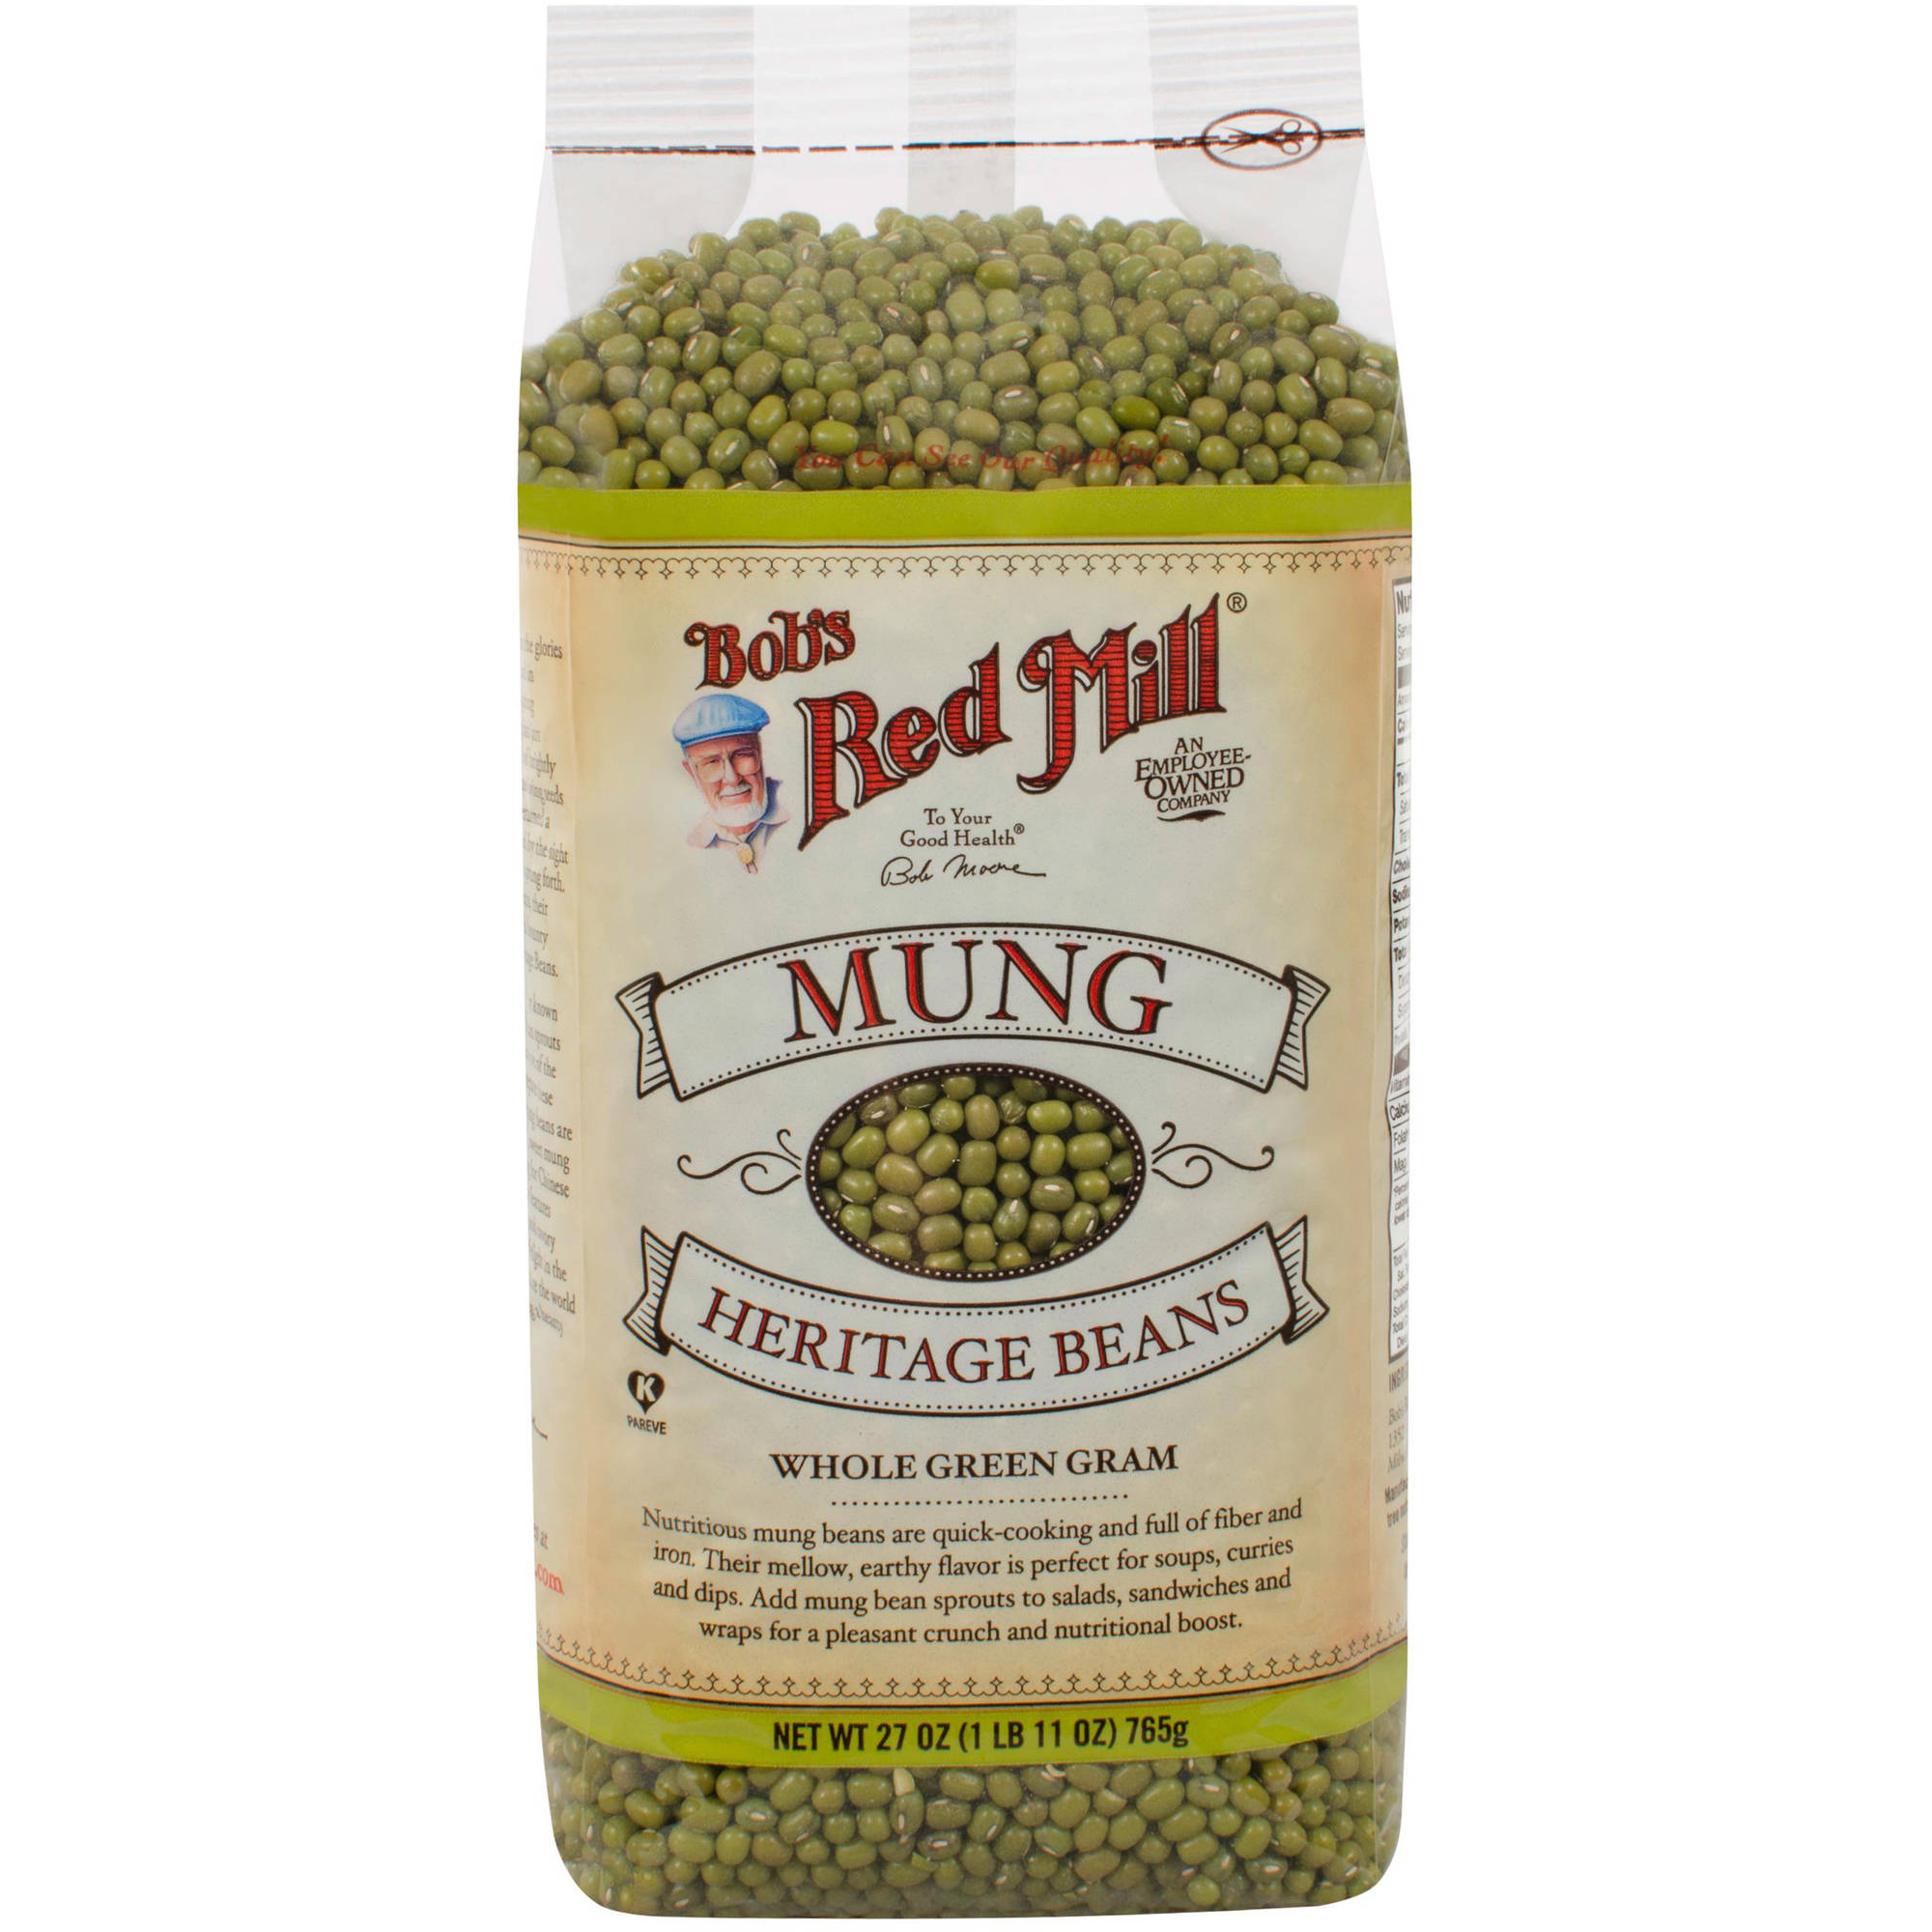 Bob's Red Mill Mung Beans, 27 oz (Pack of 4)